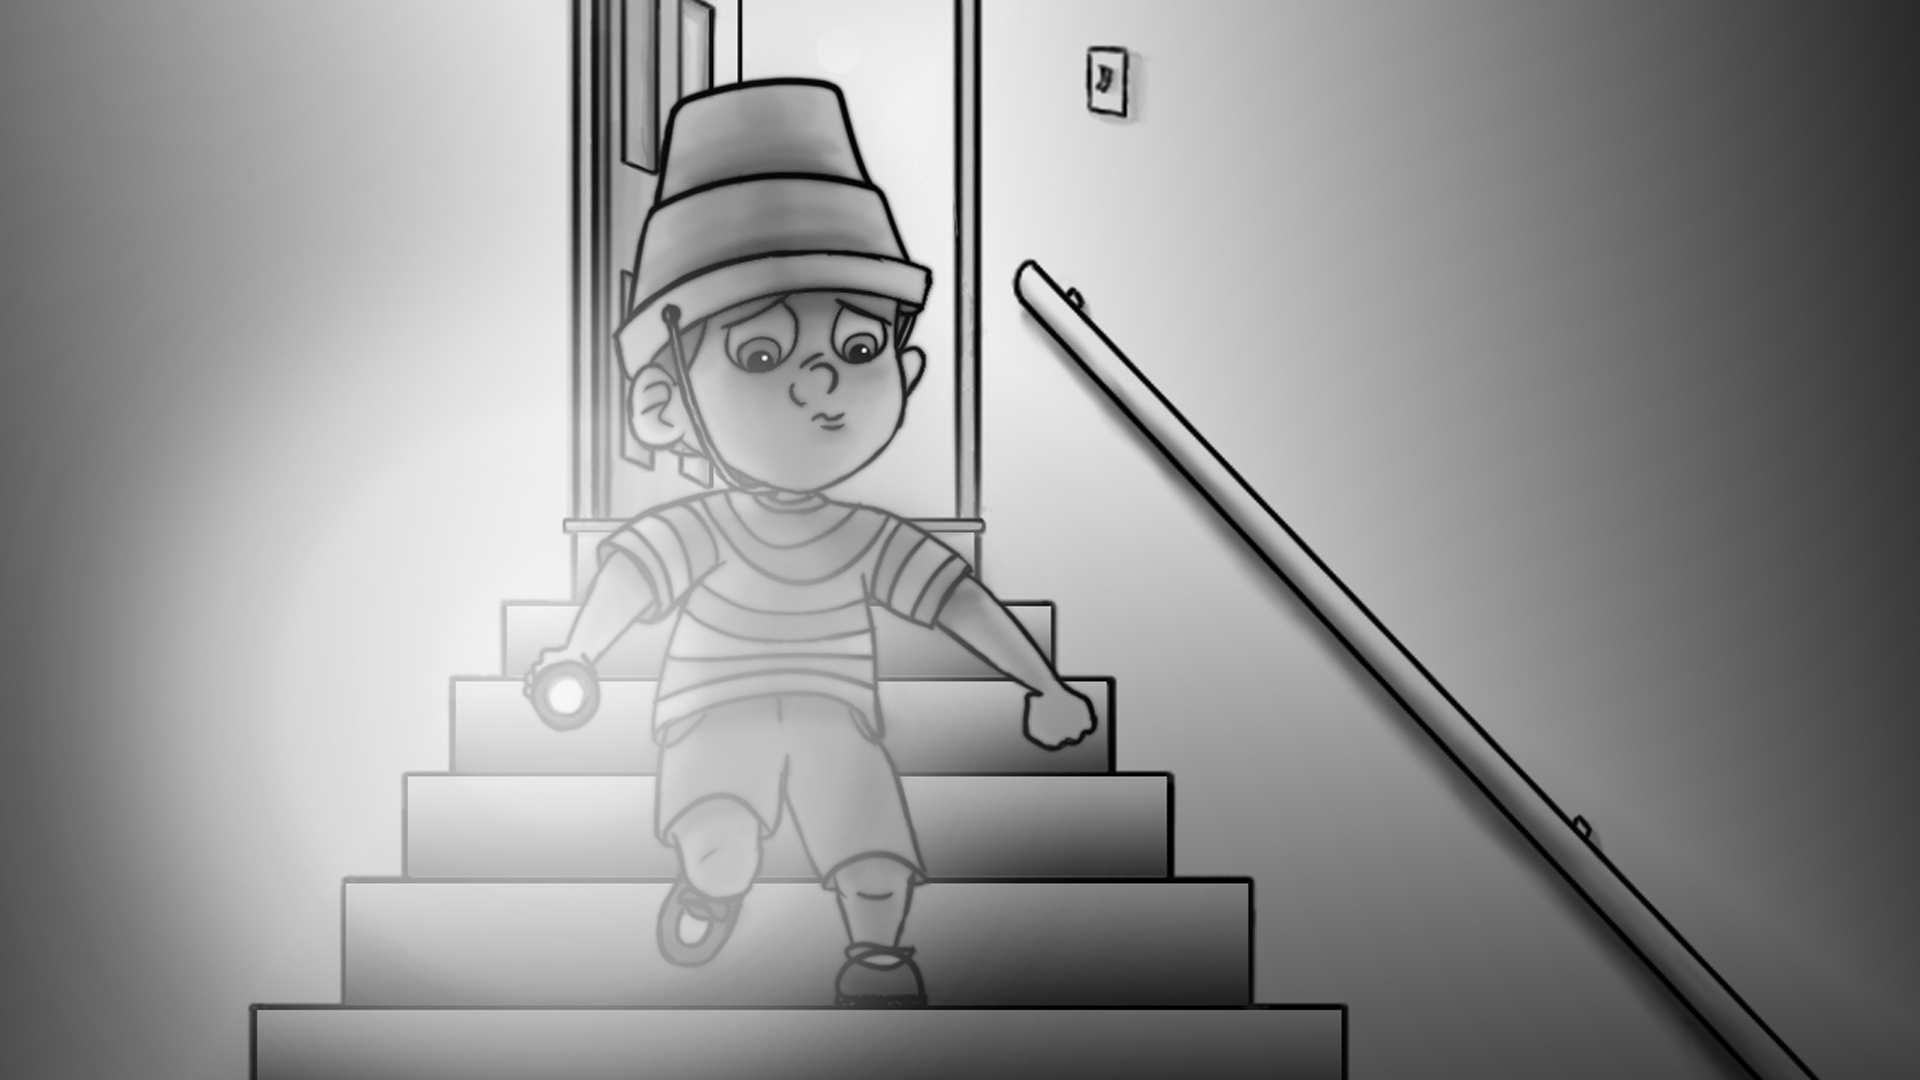 Storyboards – Something in the Basement